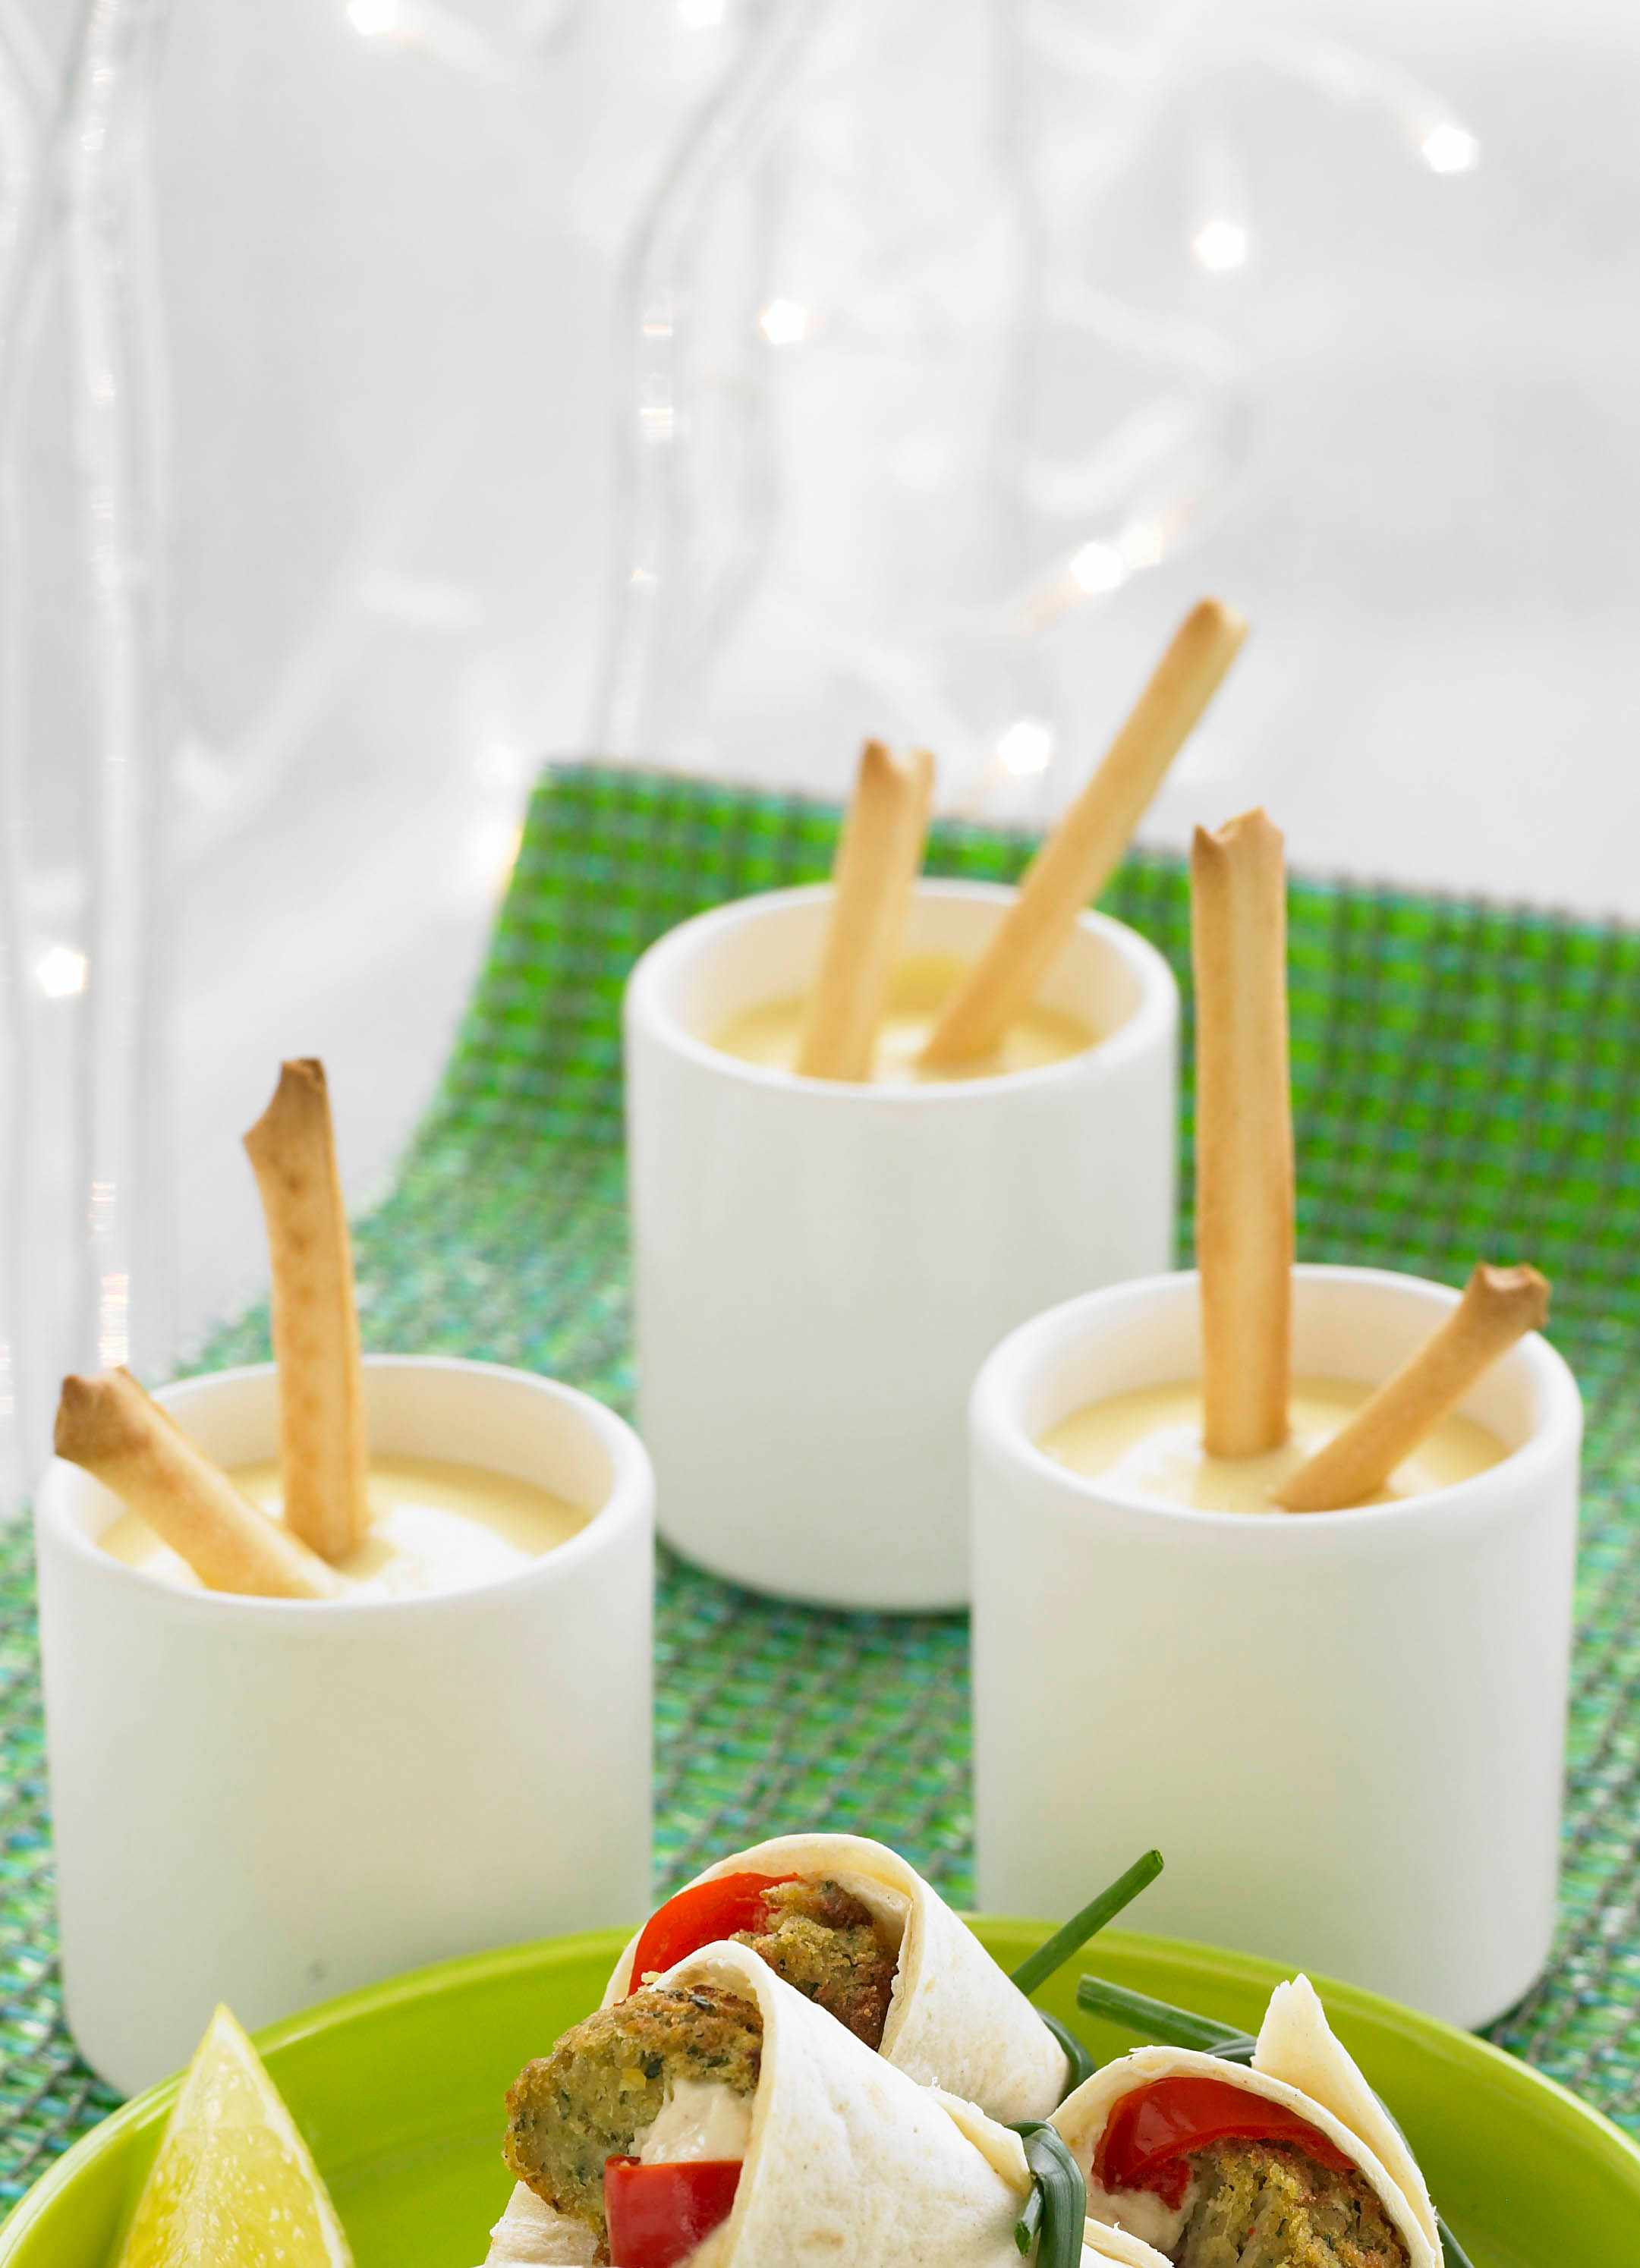 Mini cheese fondue with dippers